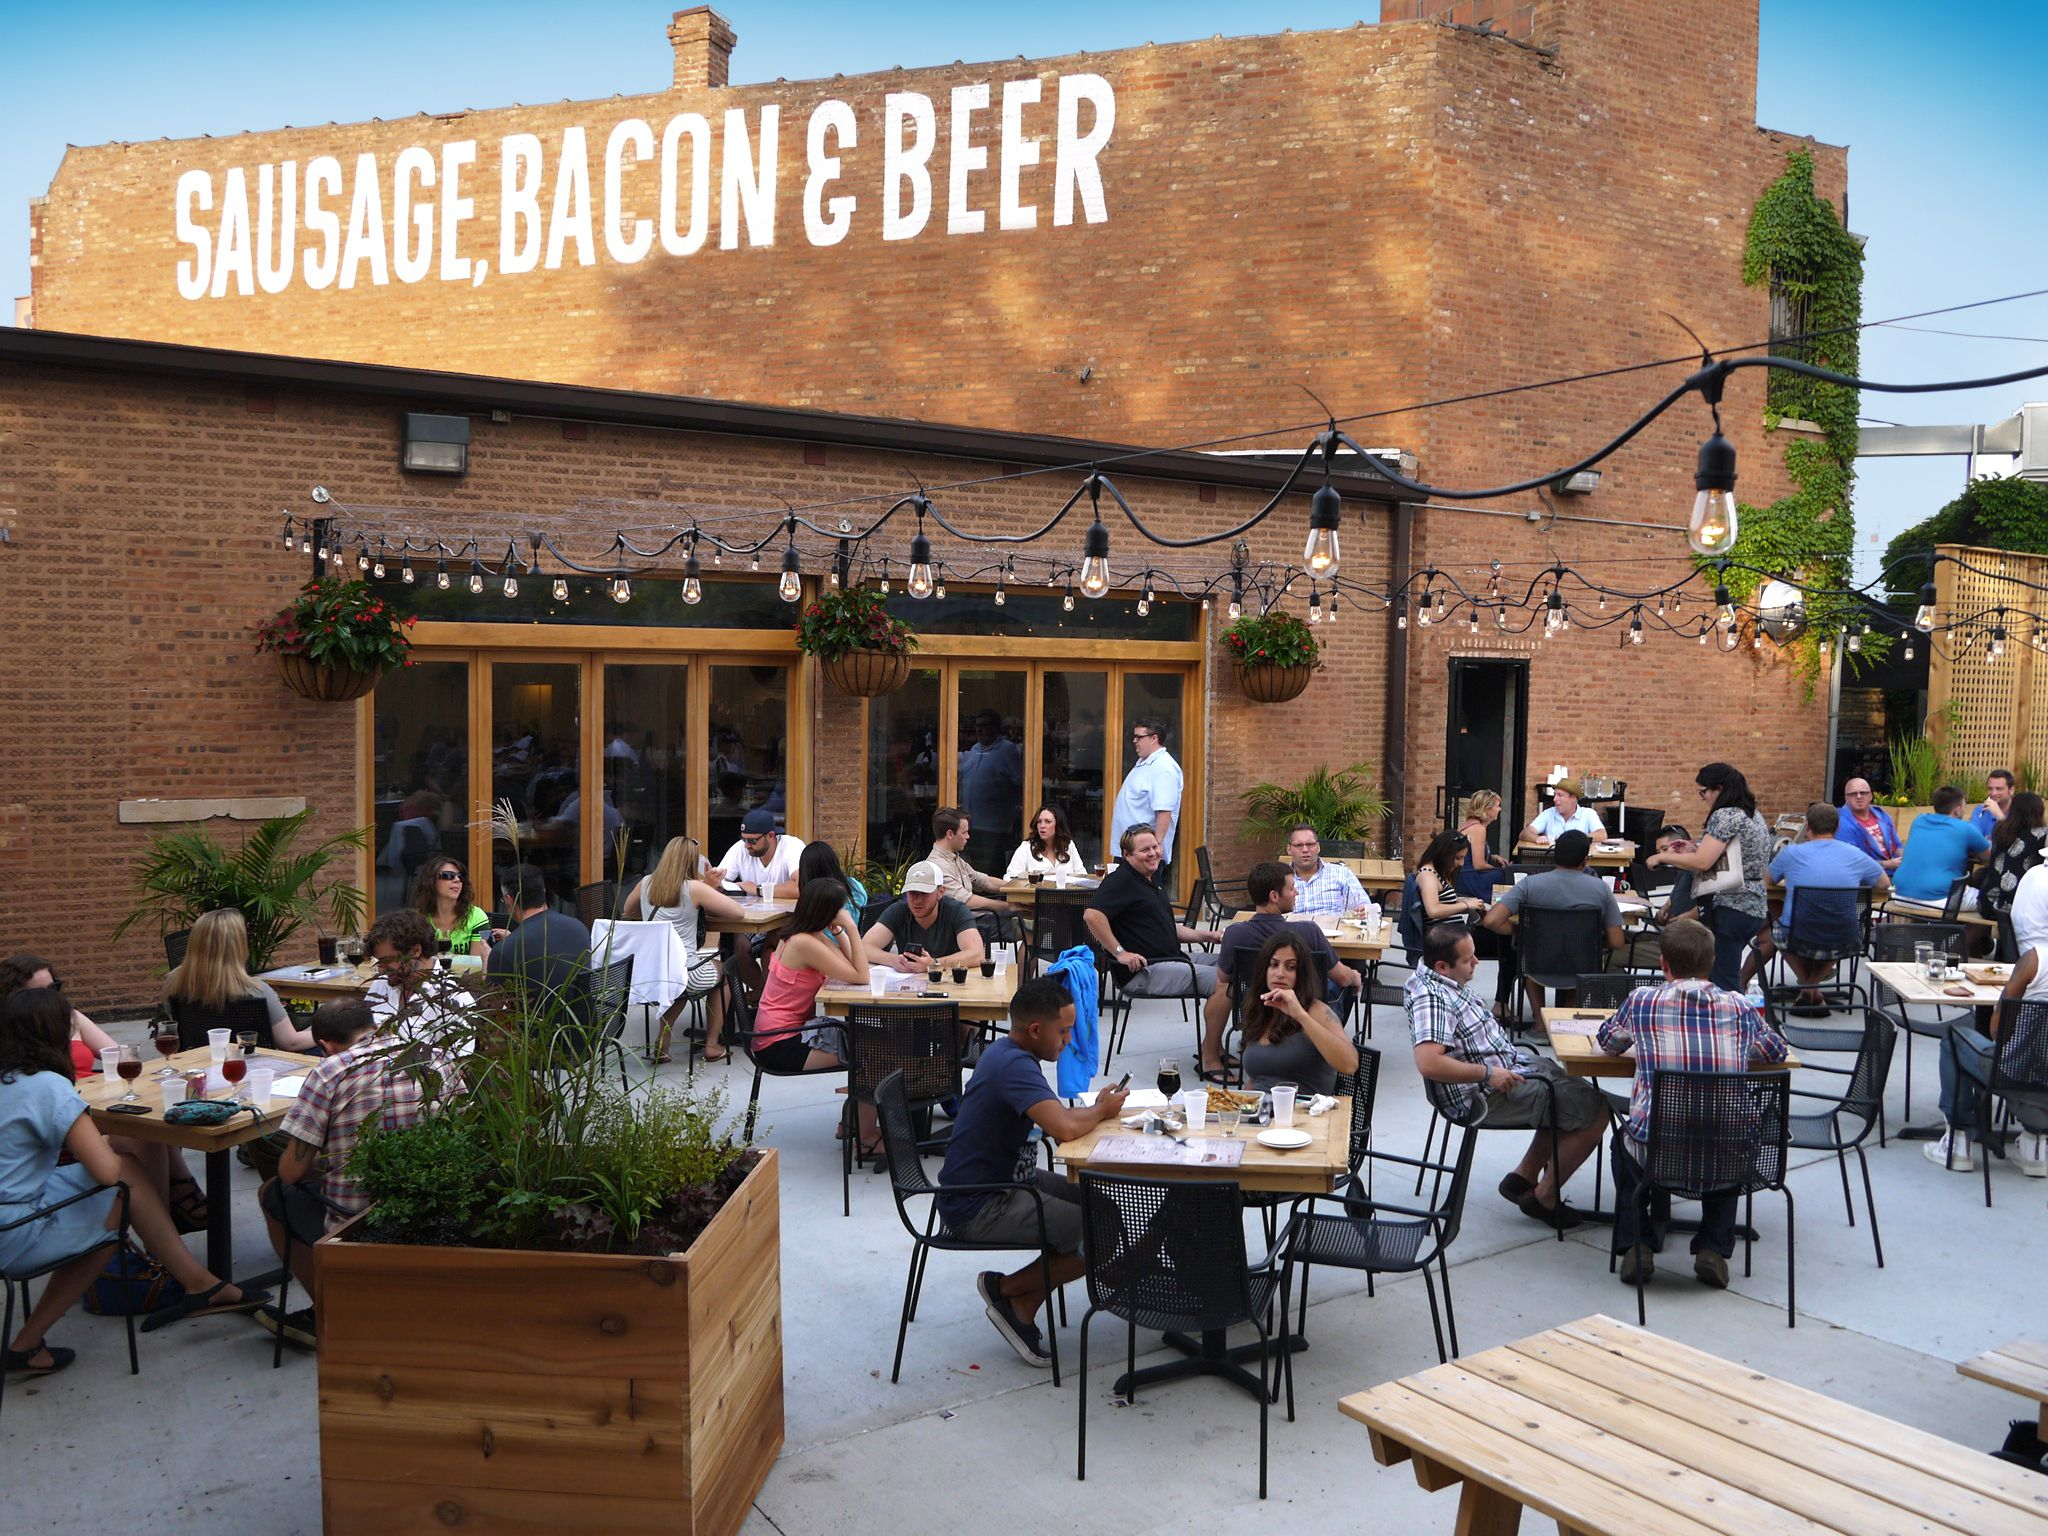 Don T Worry About Having The Kids Tag Along These Chicago Bars And Patios Will Gladly Welcome Whole Family